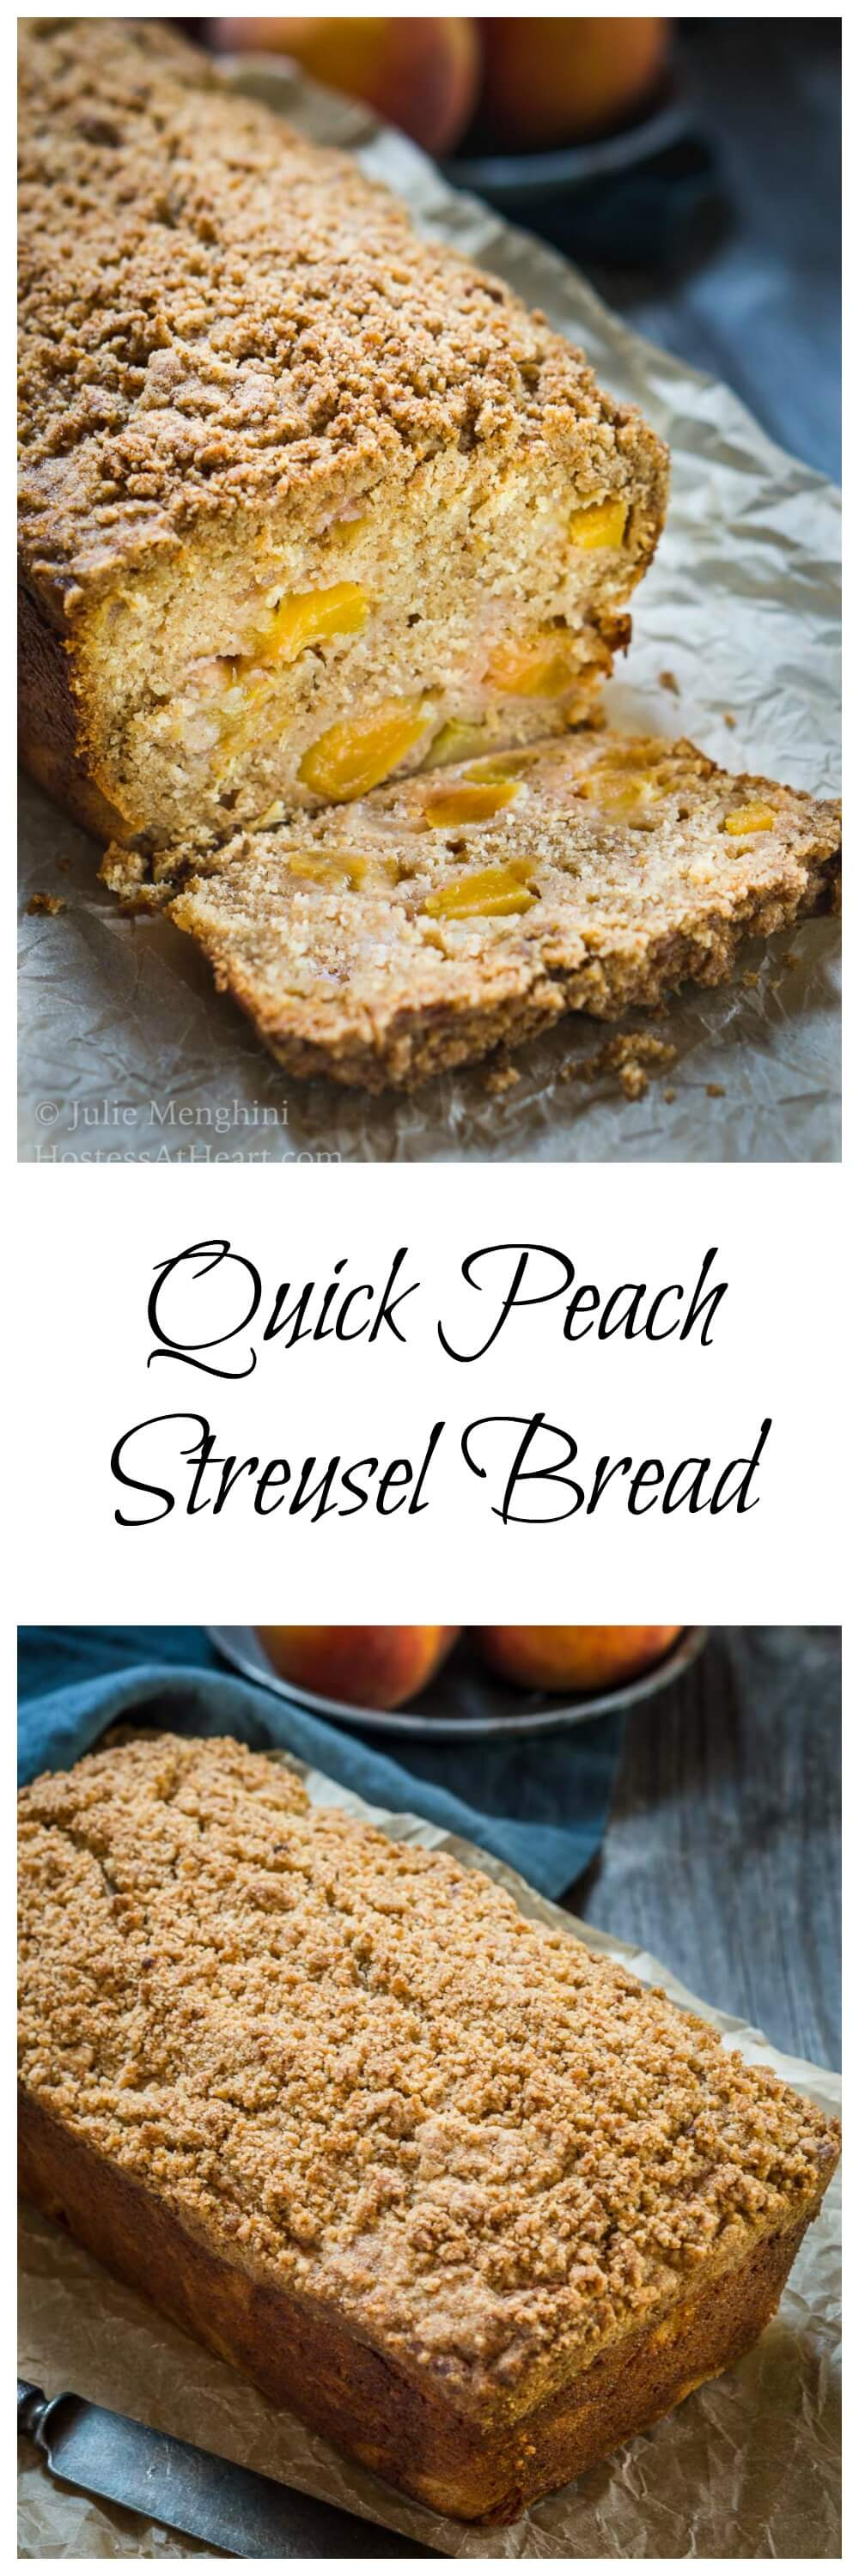 Quick Peach Streusel Bread combines a full two cups of fruit with delicious spices.  The streusel topping adds a nice crunch that everyone will love. HostessAtHeart.com